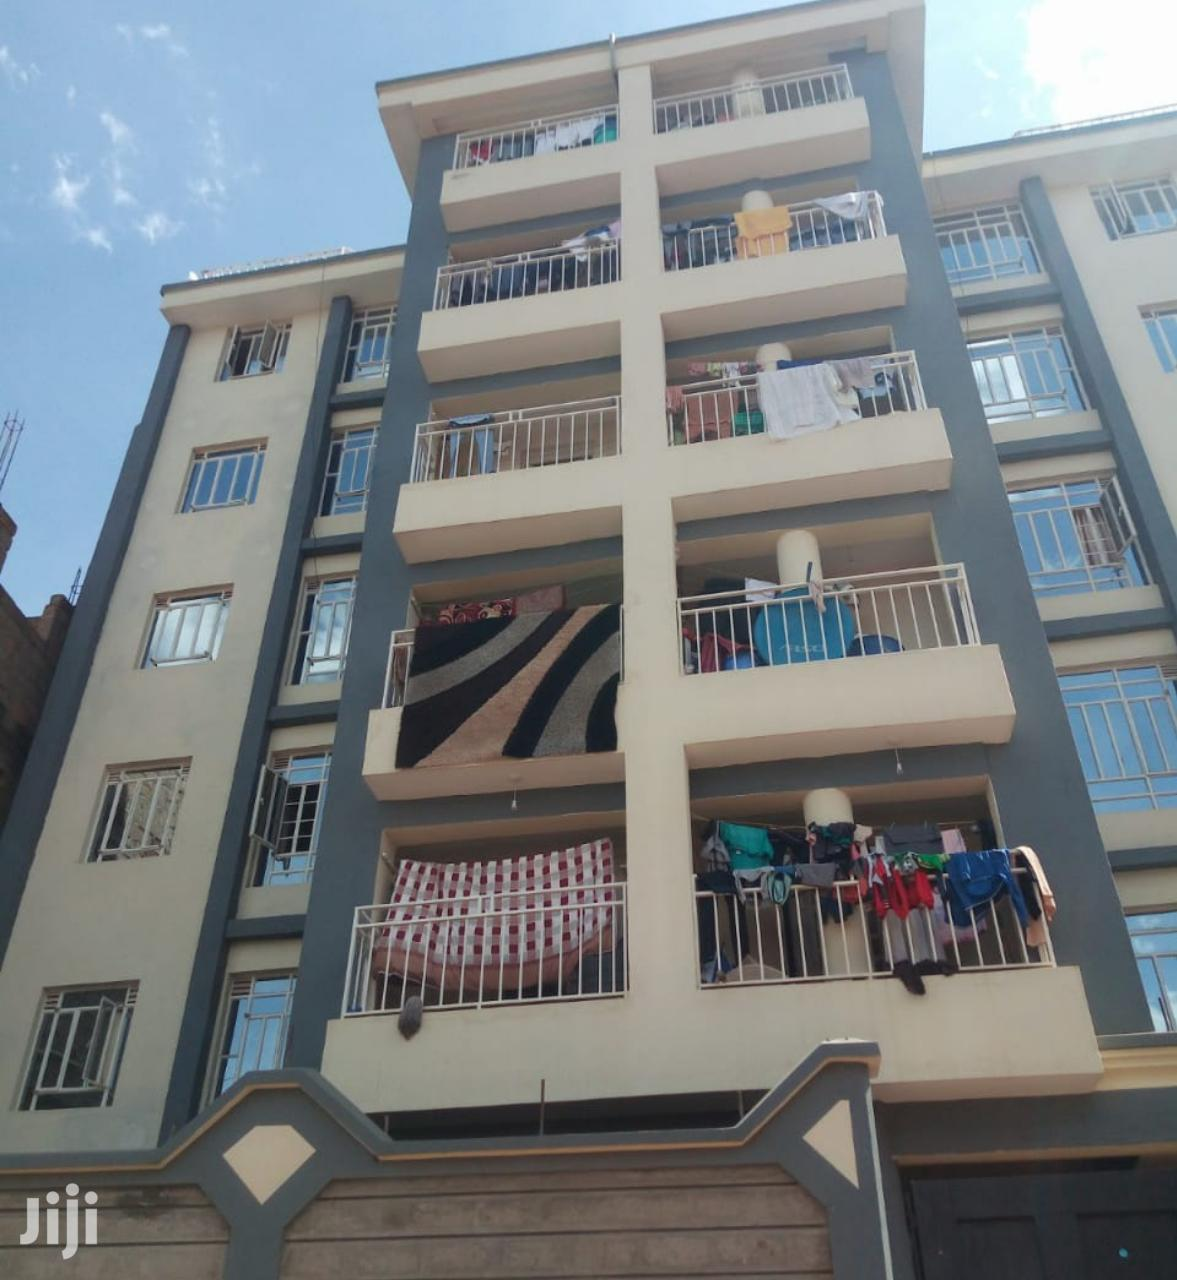 Kiambu Kirigiti Flat Fully Occupied | Houses & Apartments For Sale for sale in Kiganjo, Kiambu, Kenya